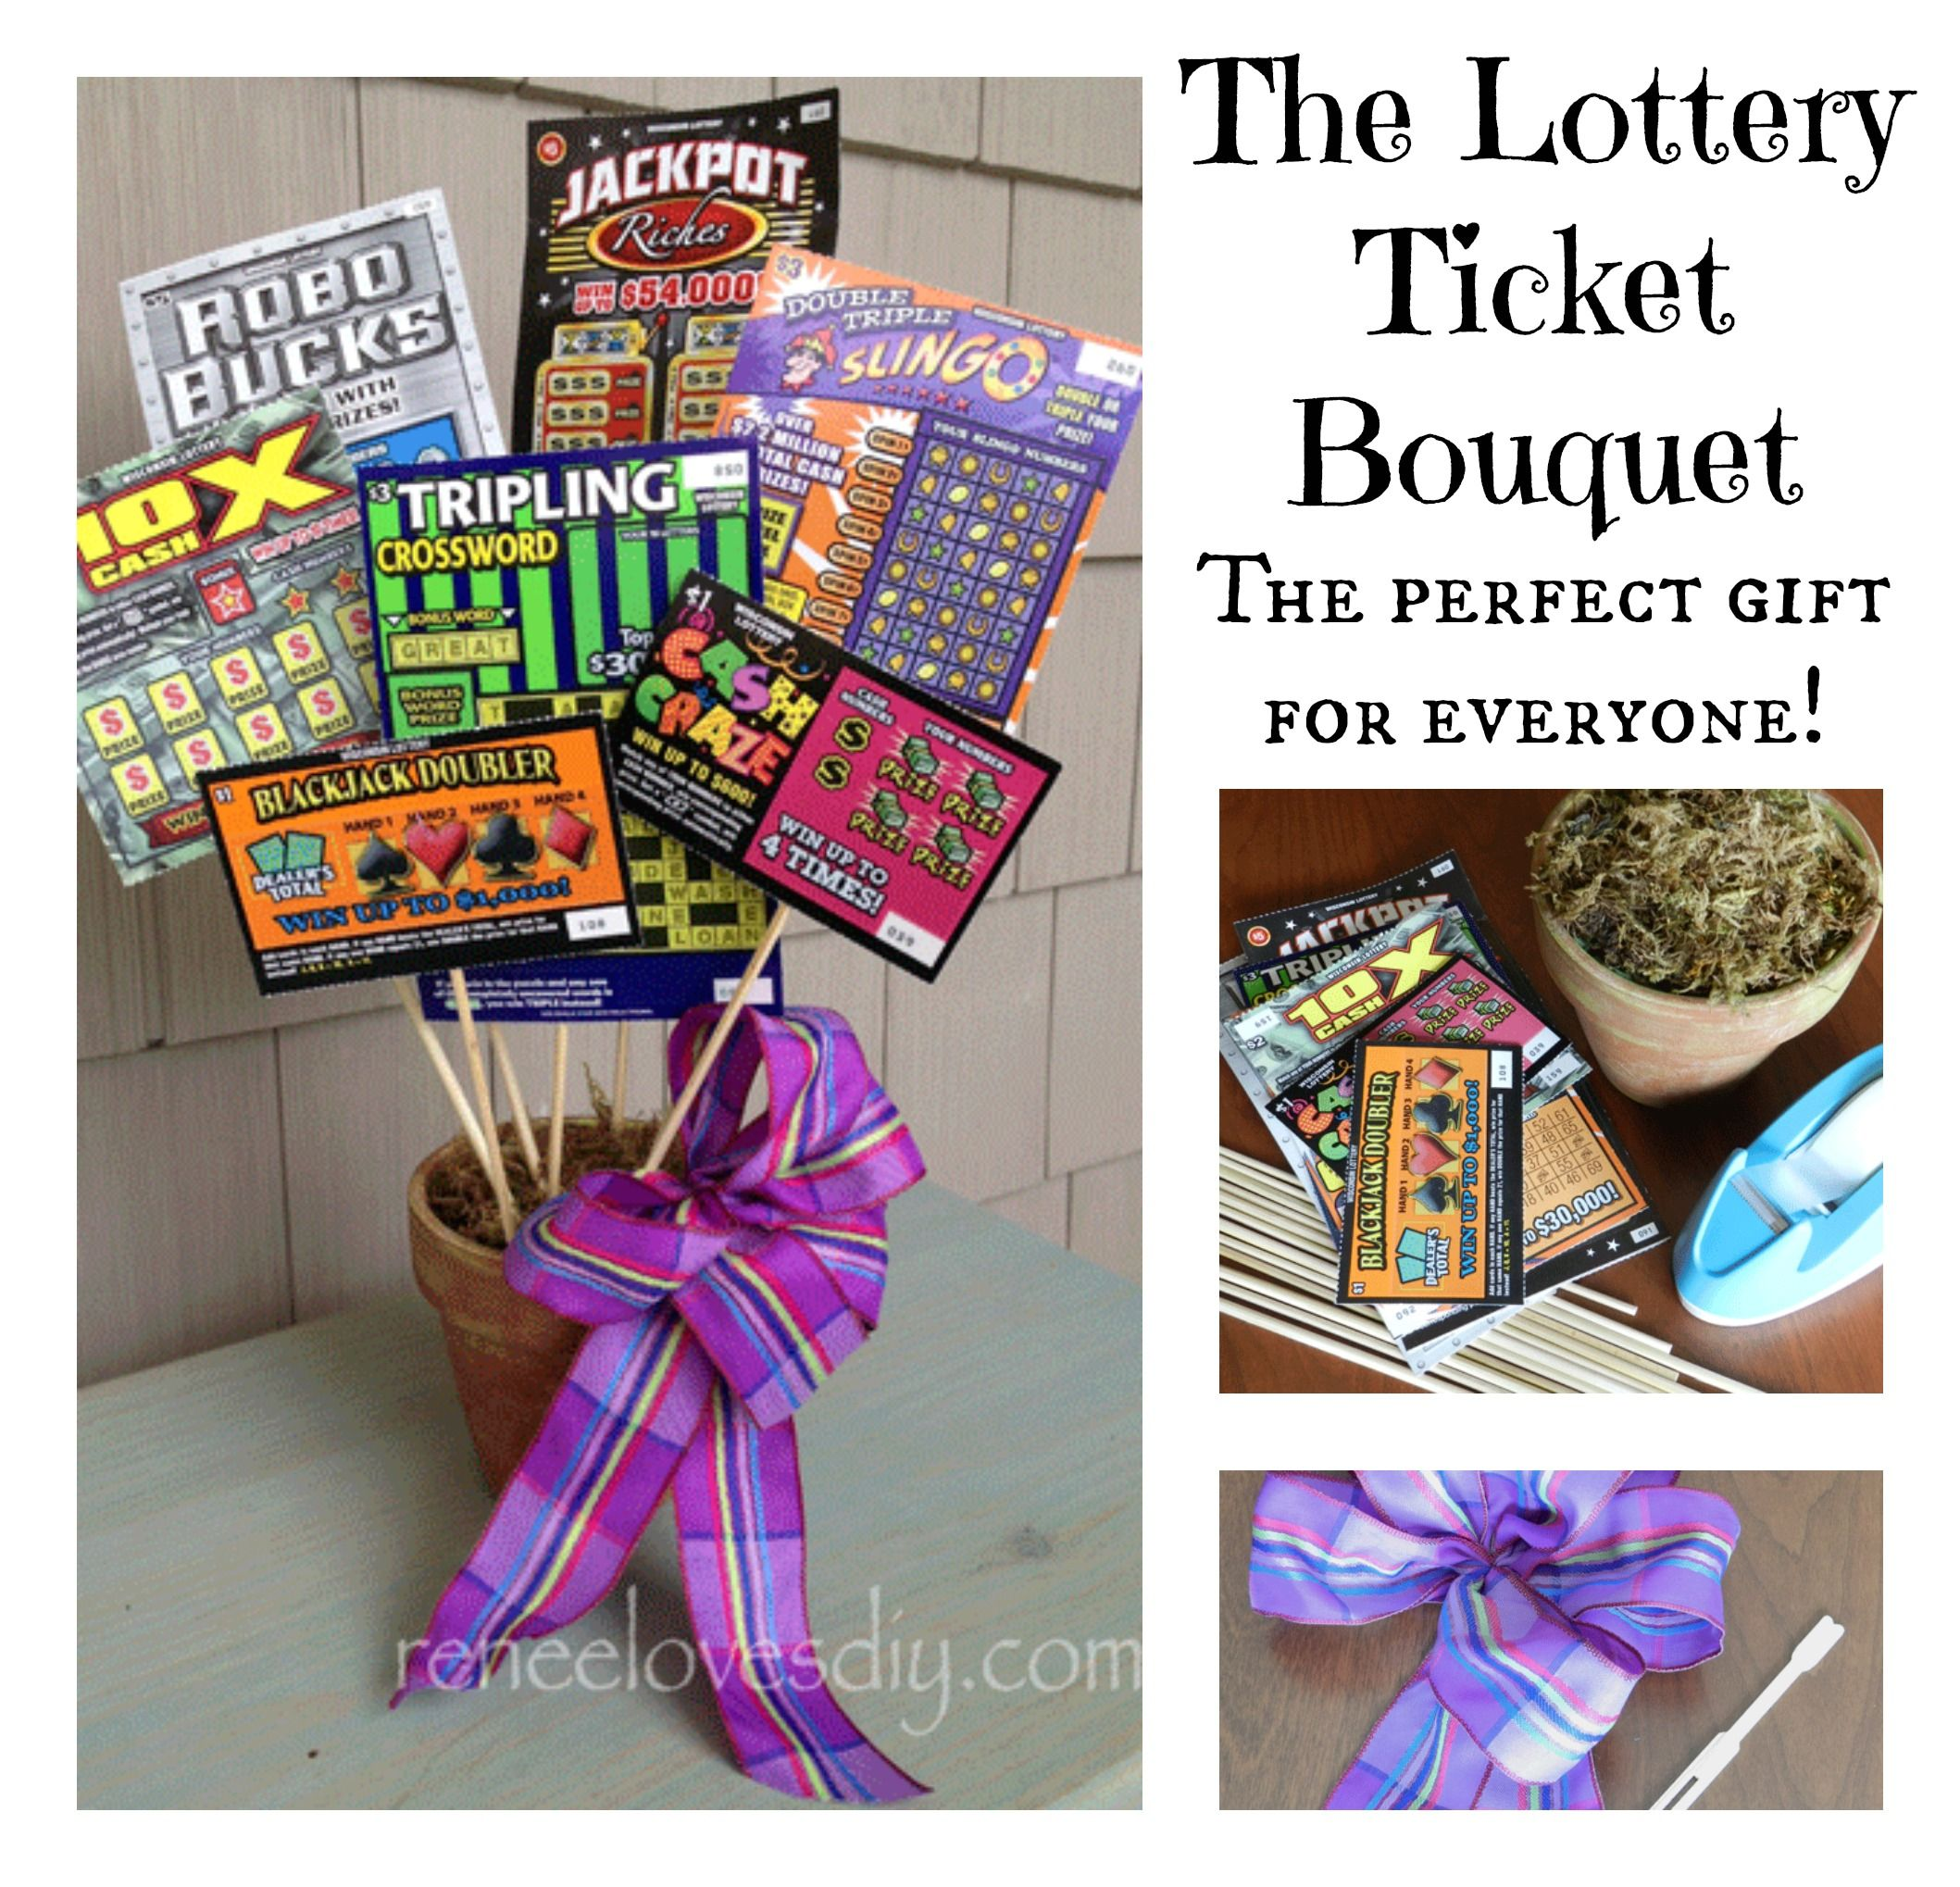 The Lottery Ticket Bouquet Is A Great Way To Make Someoneu0027s Day Special!  Check It  How To Make Tickets For A Fundraiser